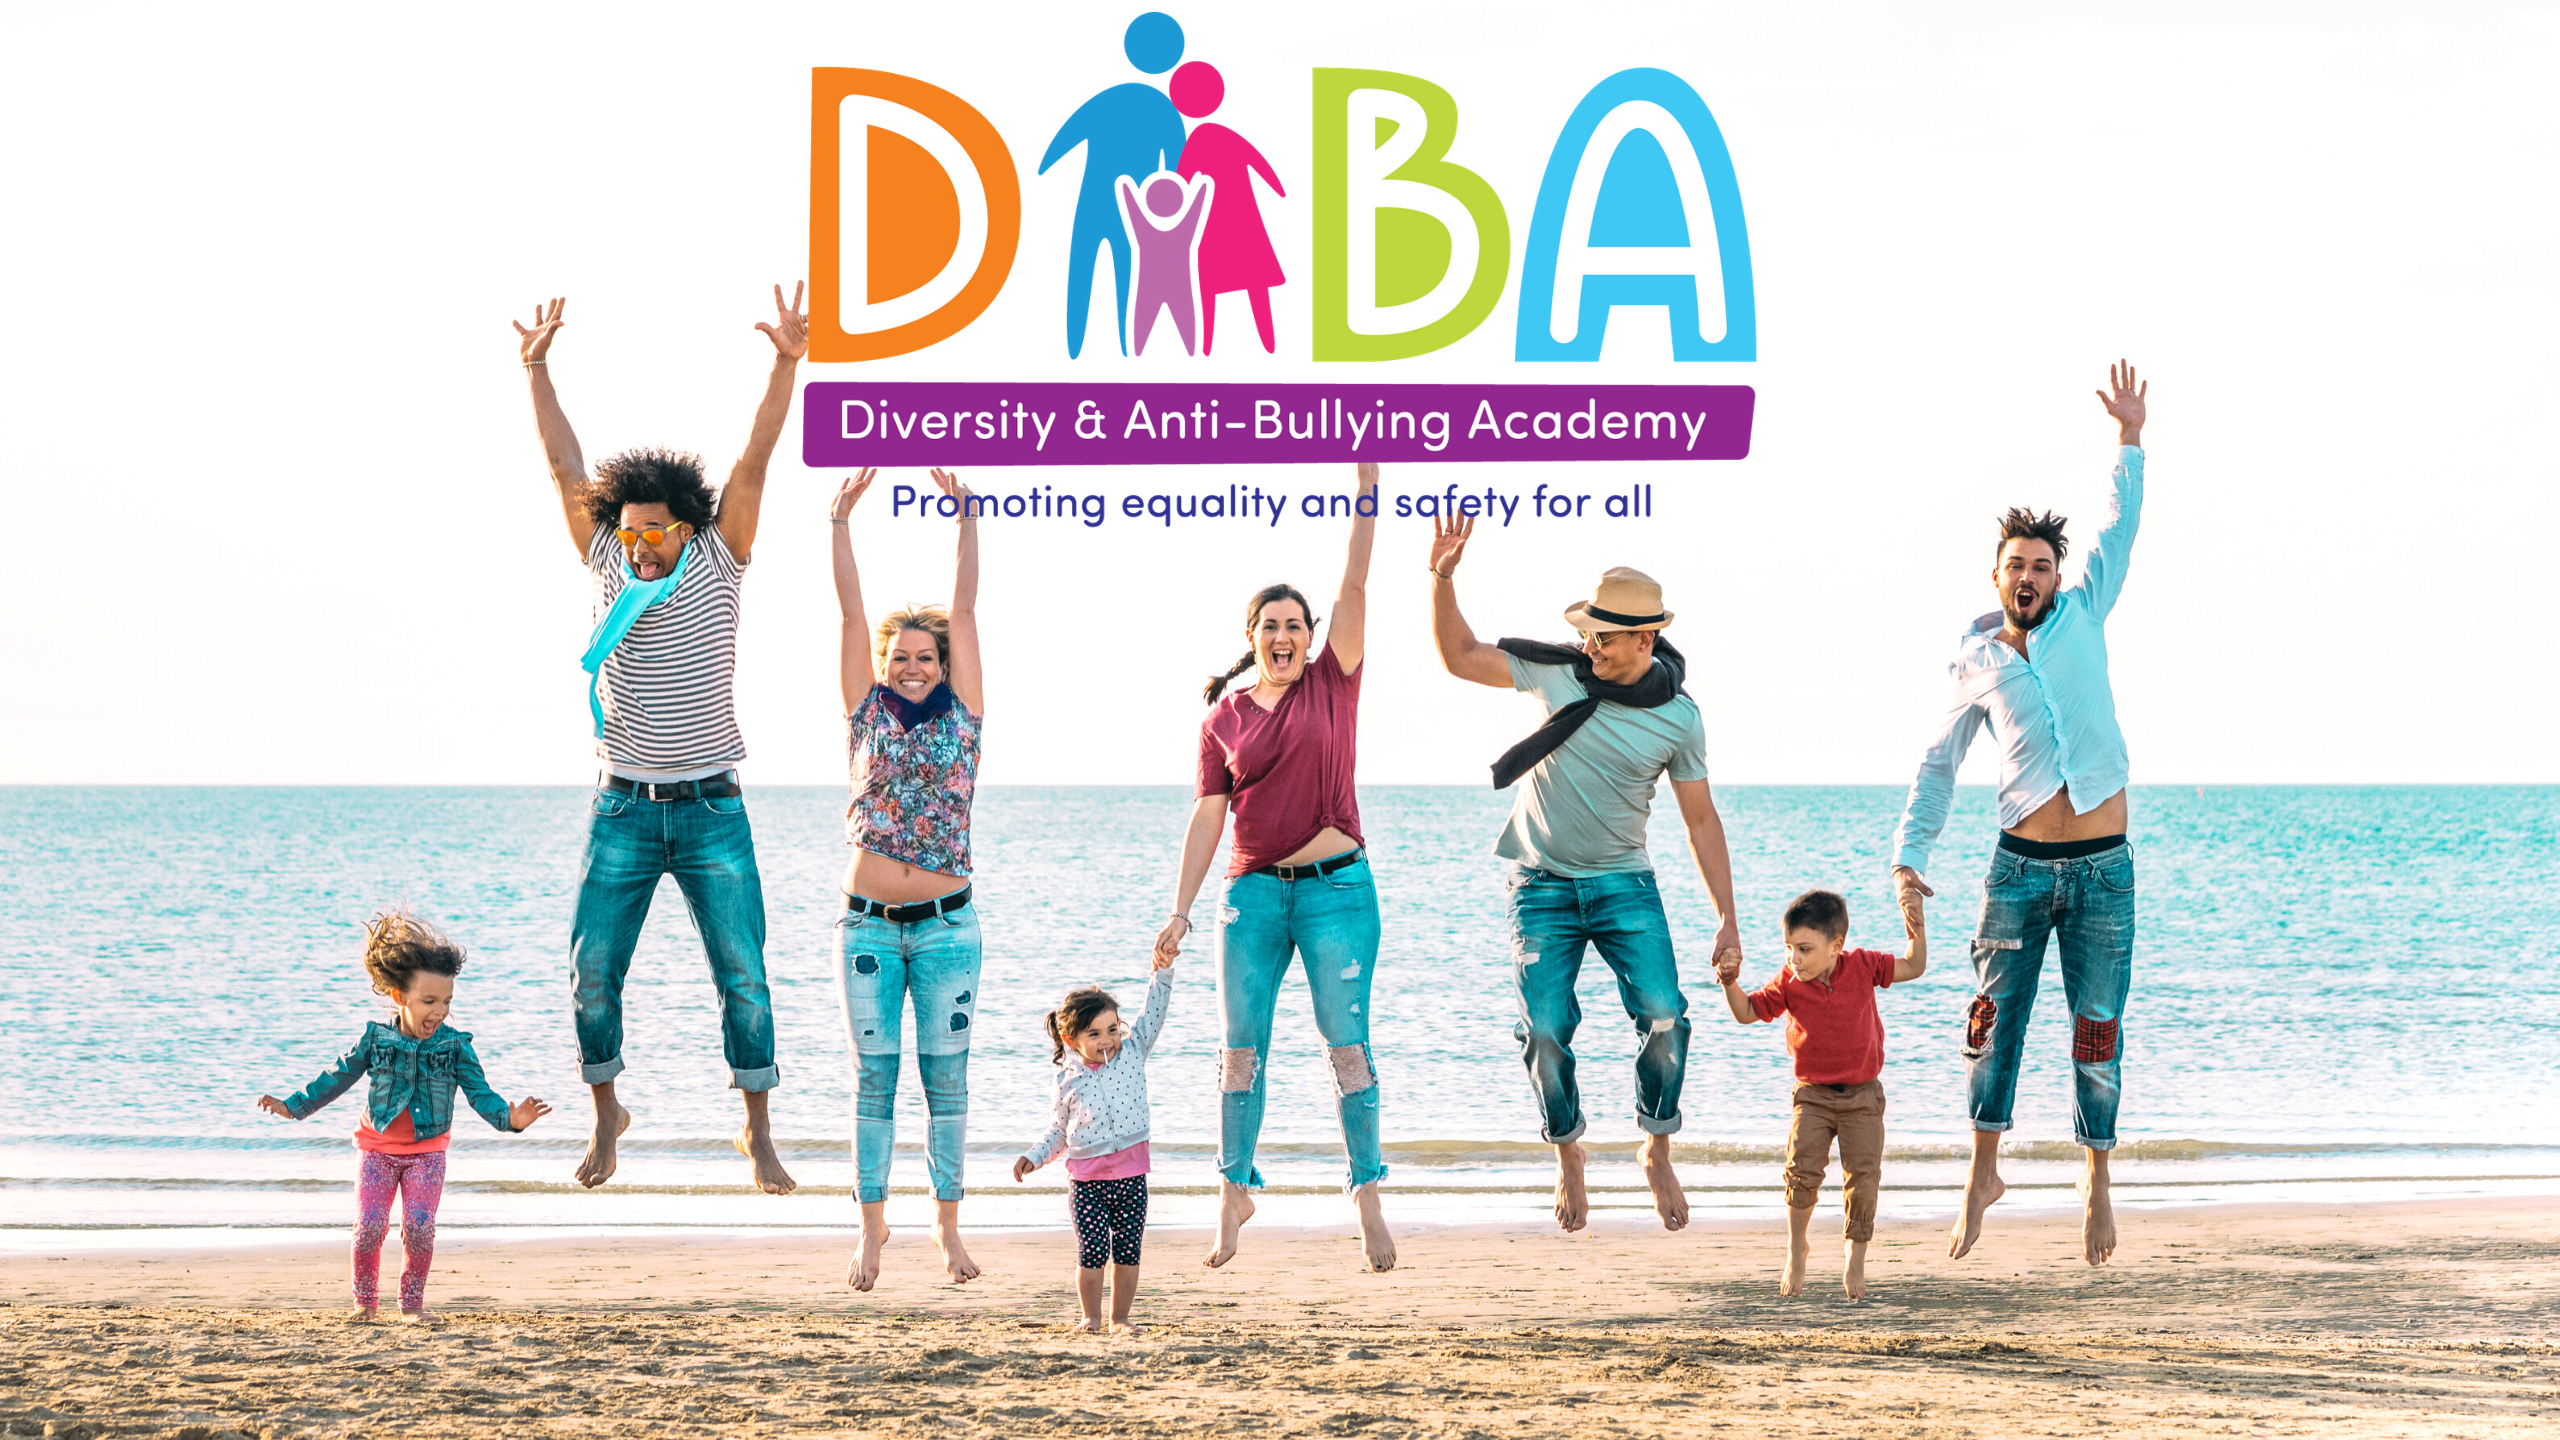 The Diversity & Anti-Bullying Academy is for parents and teaching to learn what is needed to teach their kids to prevent and stop bullying as well as to embrace differences and diversity as well as their own.